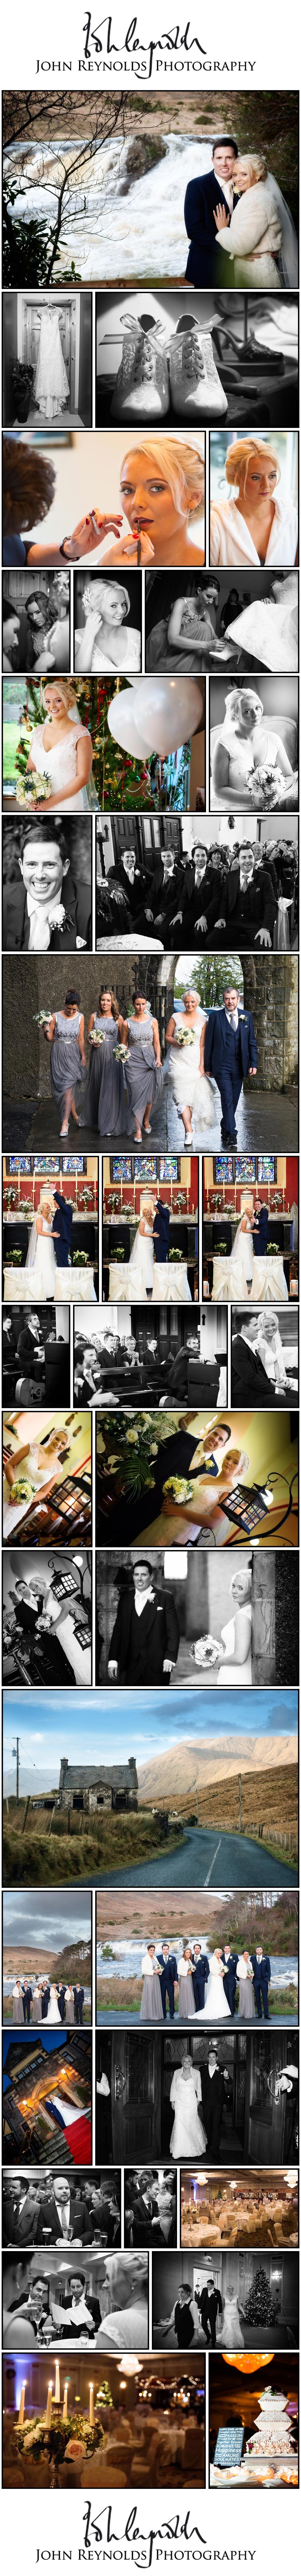 Blog Collage-Sinead & Gary